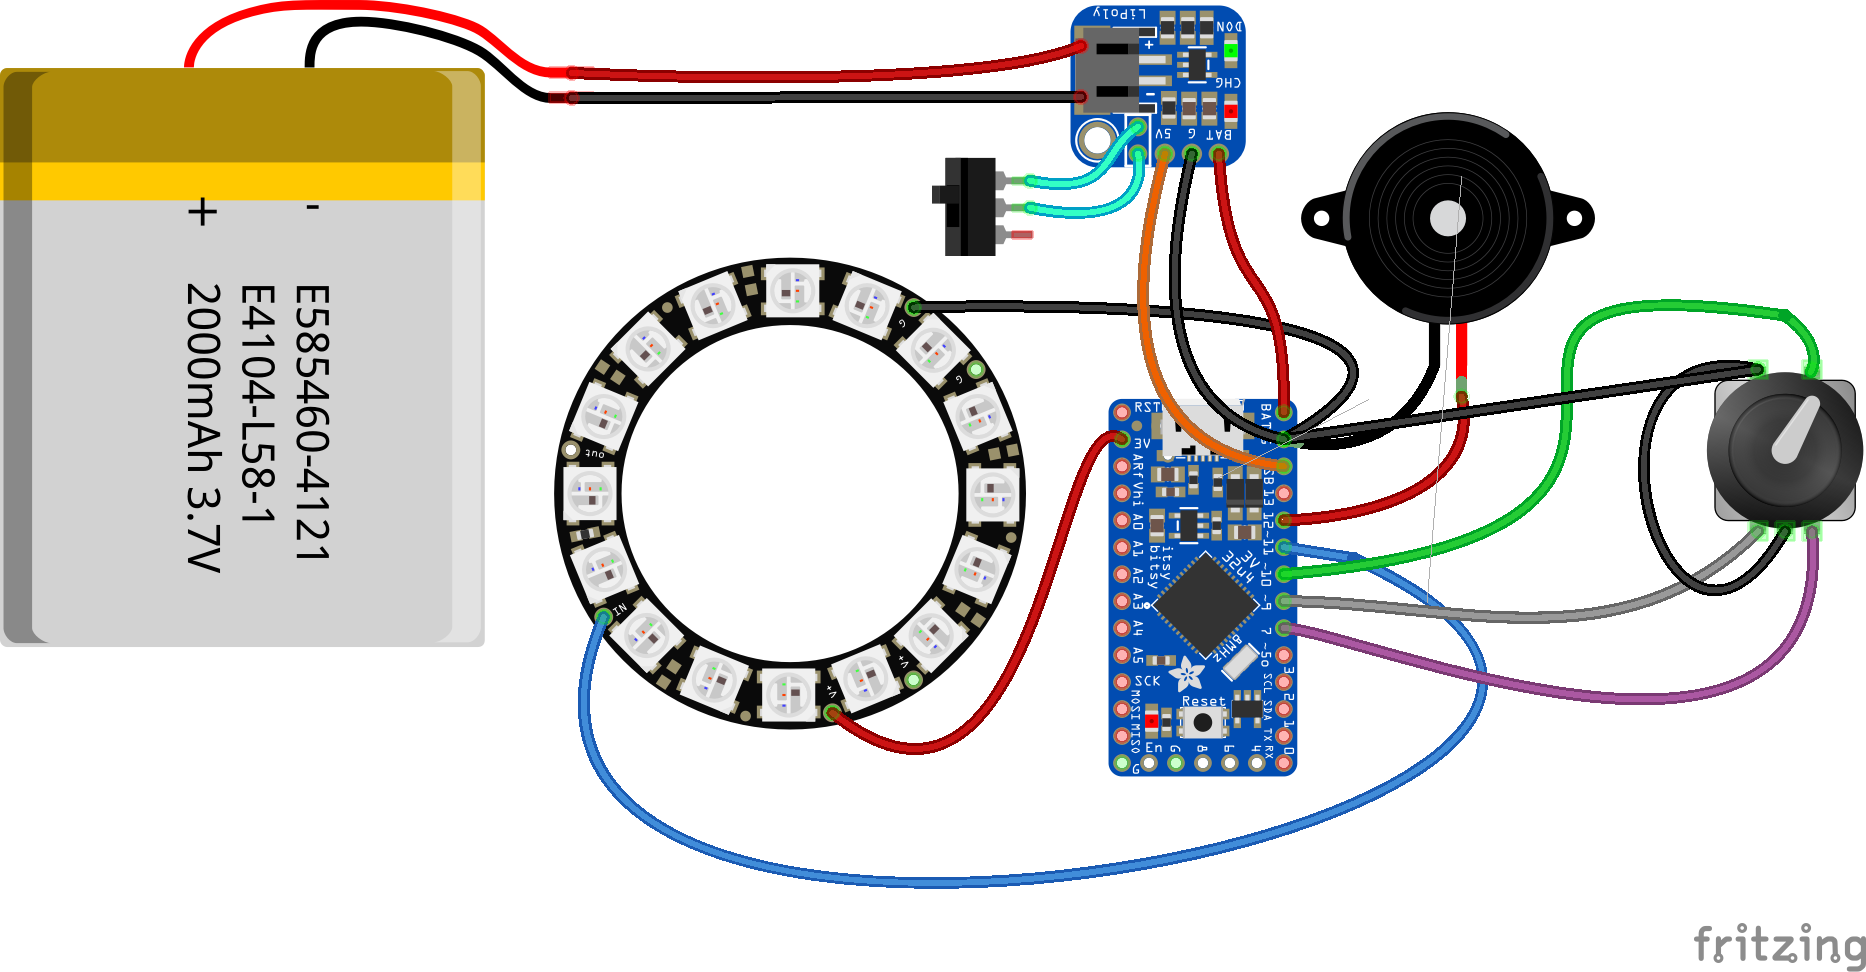 leds_pomodoro_wiring.png